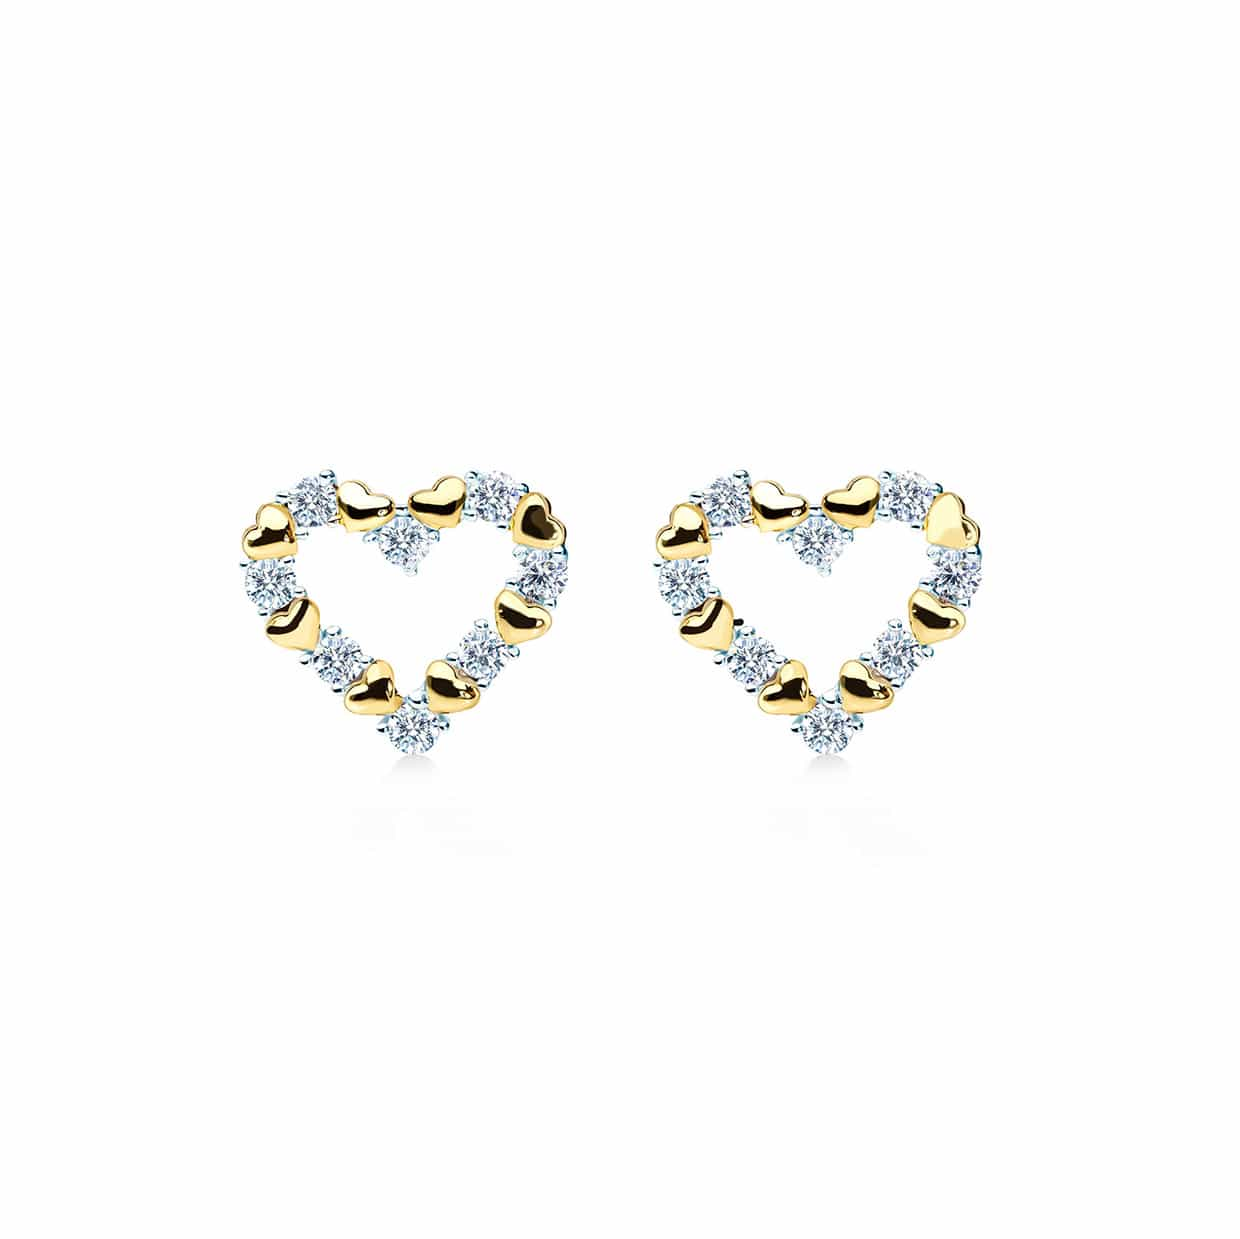 Loving Gold Earrings - Abelstedt